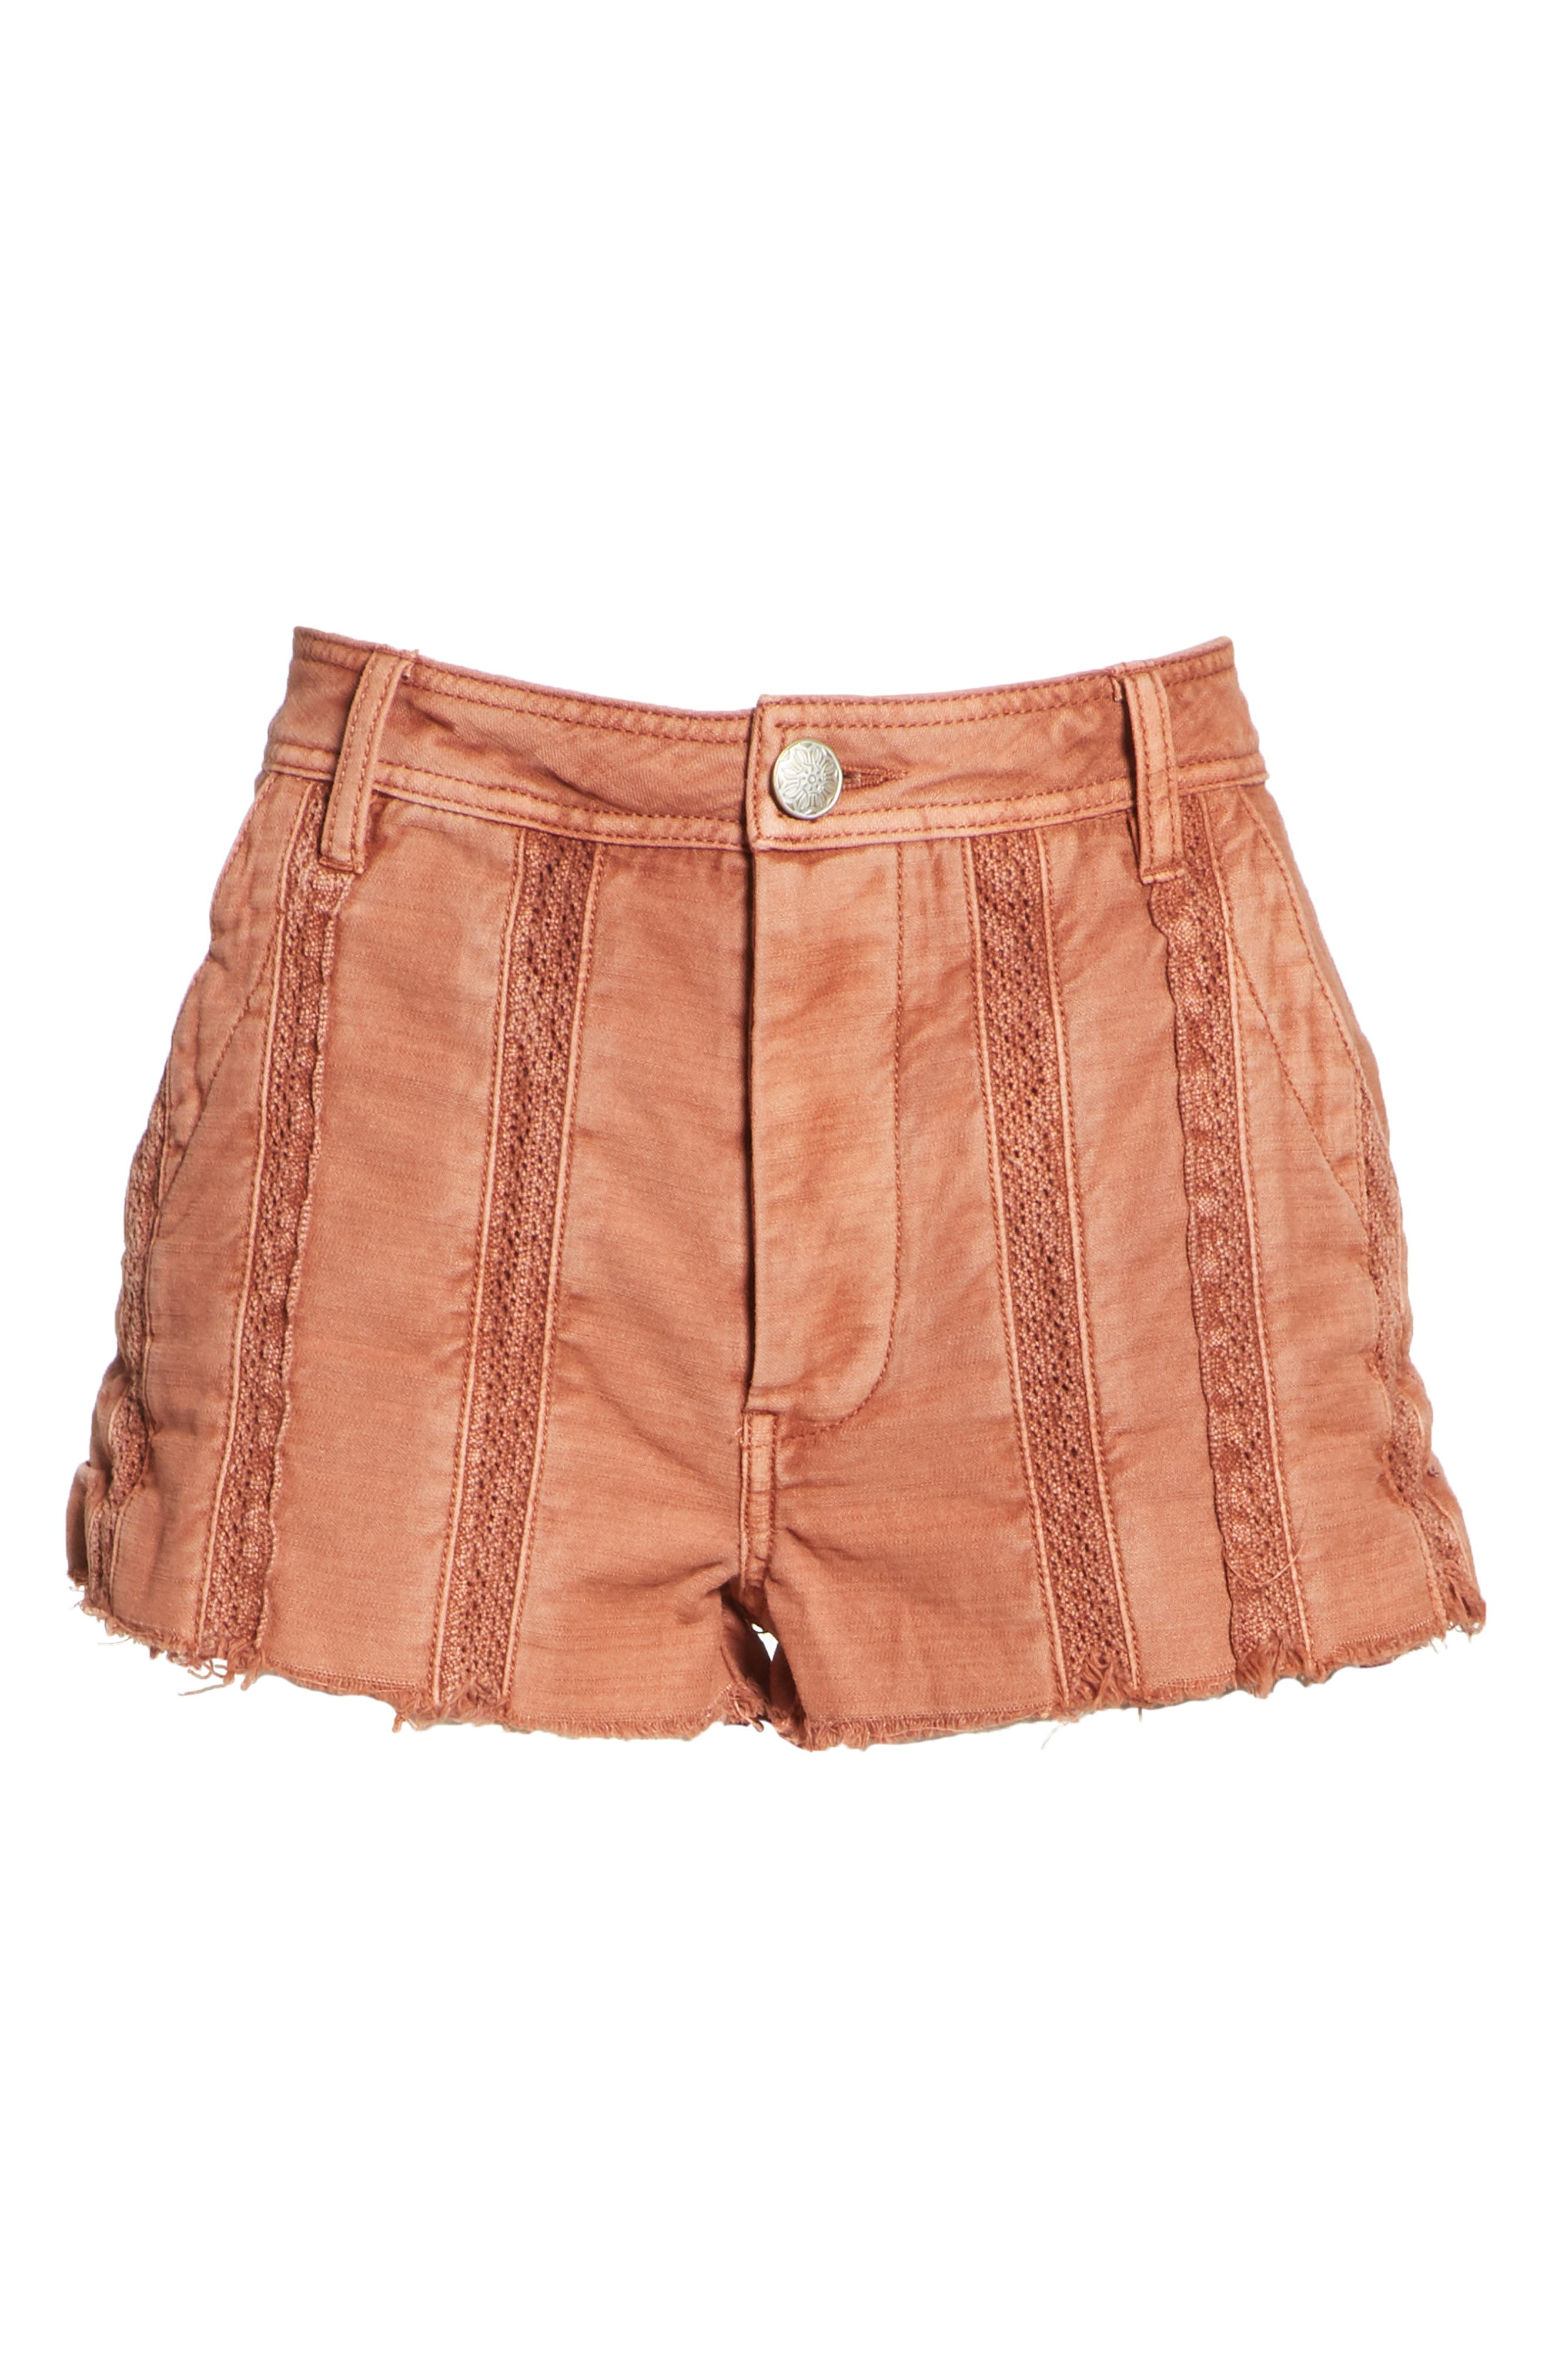 Great Expectations Lace Cutout Shorts,                             Alternate thumbnail 12, color,